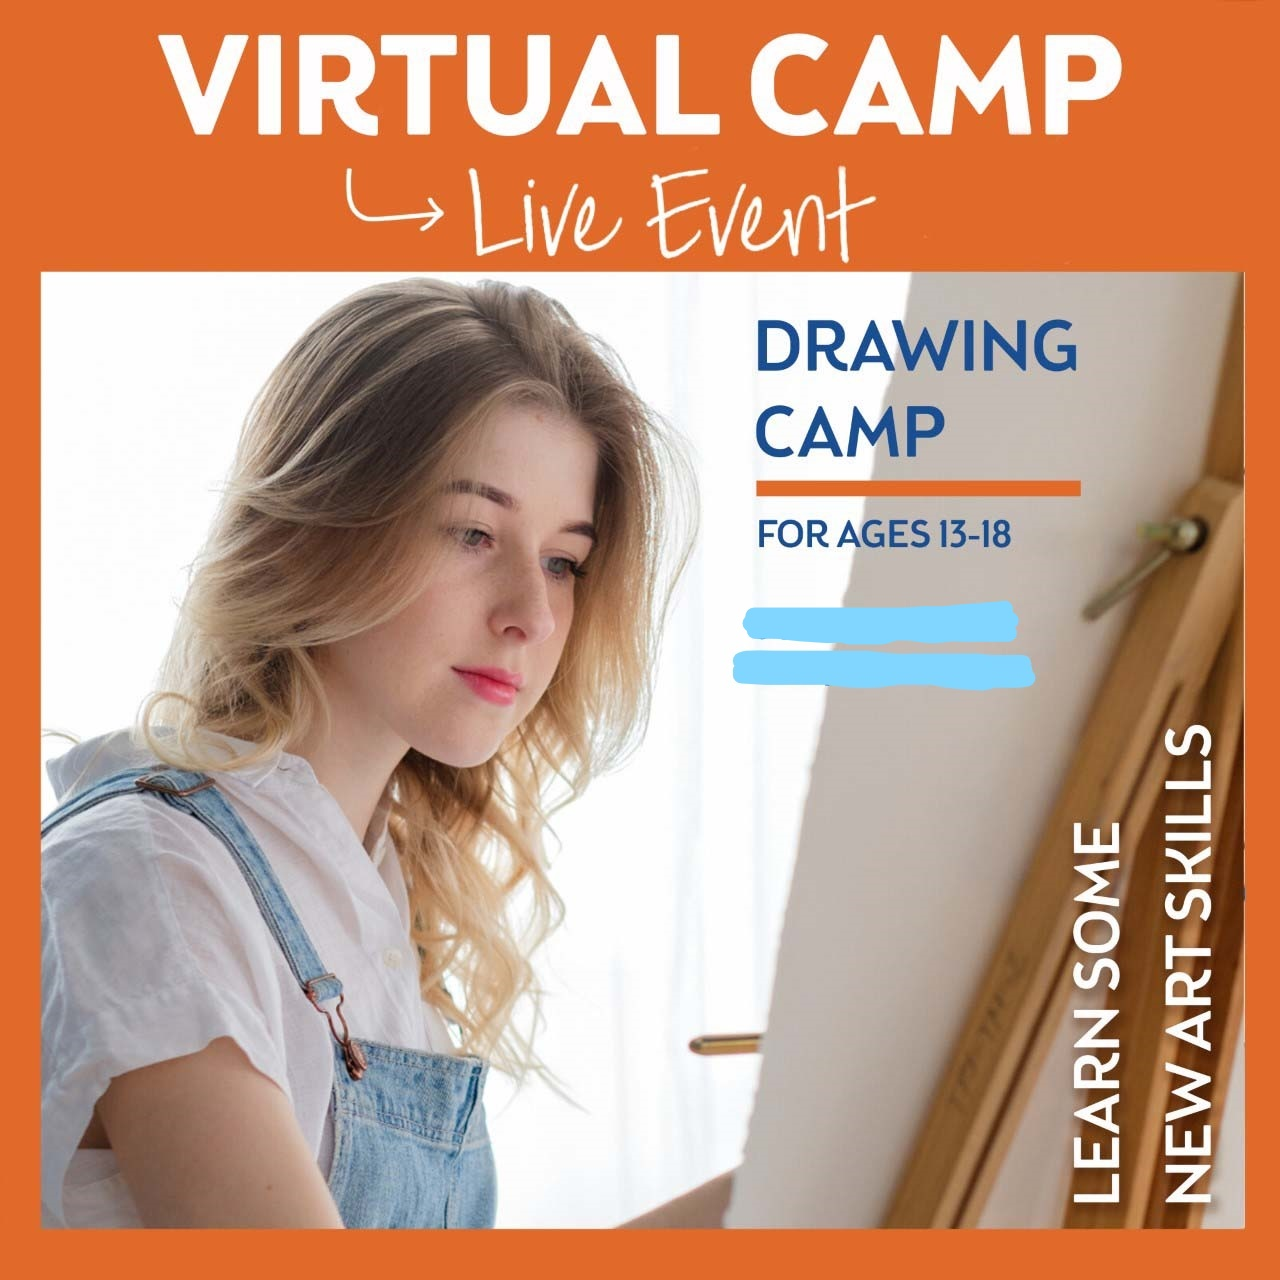 Ages 13-18 - Week 3 - Virtual Summer Art Series